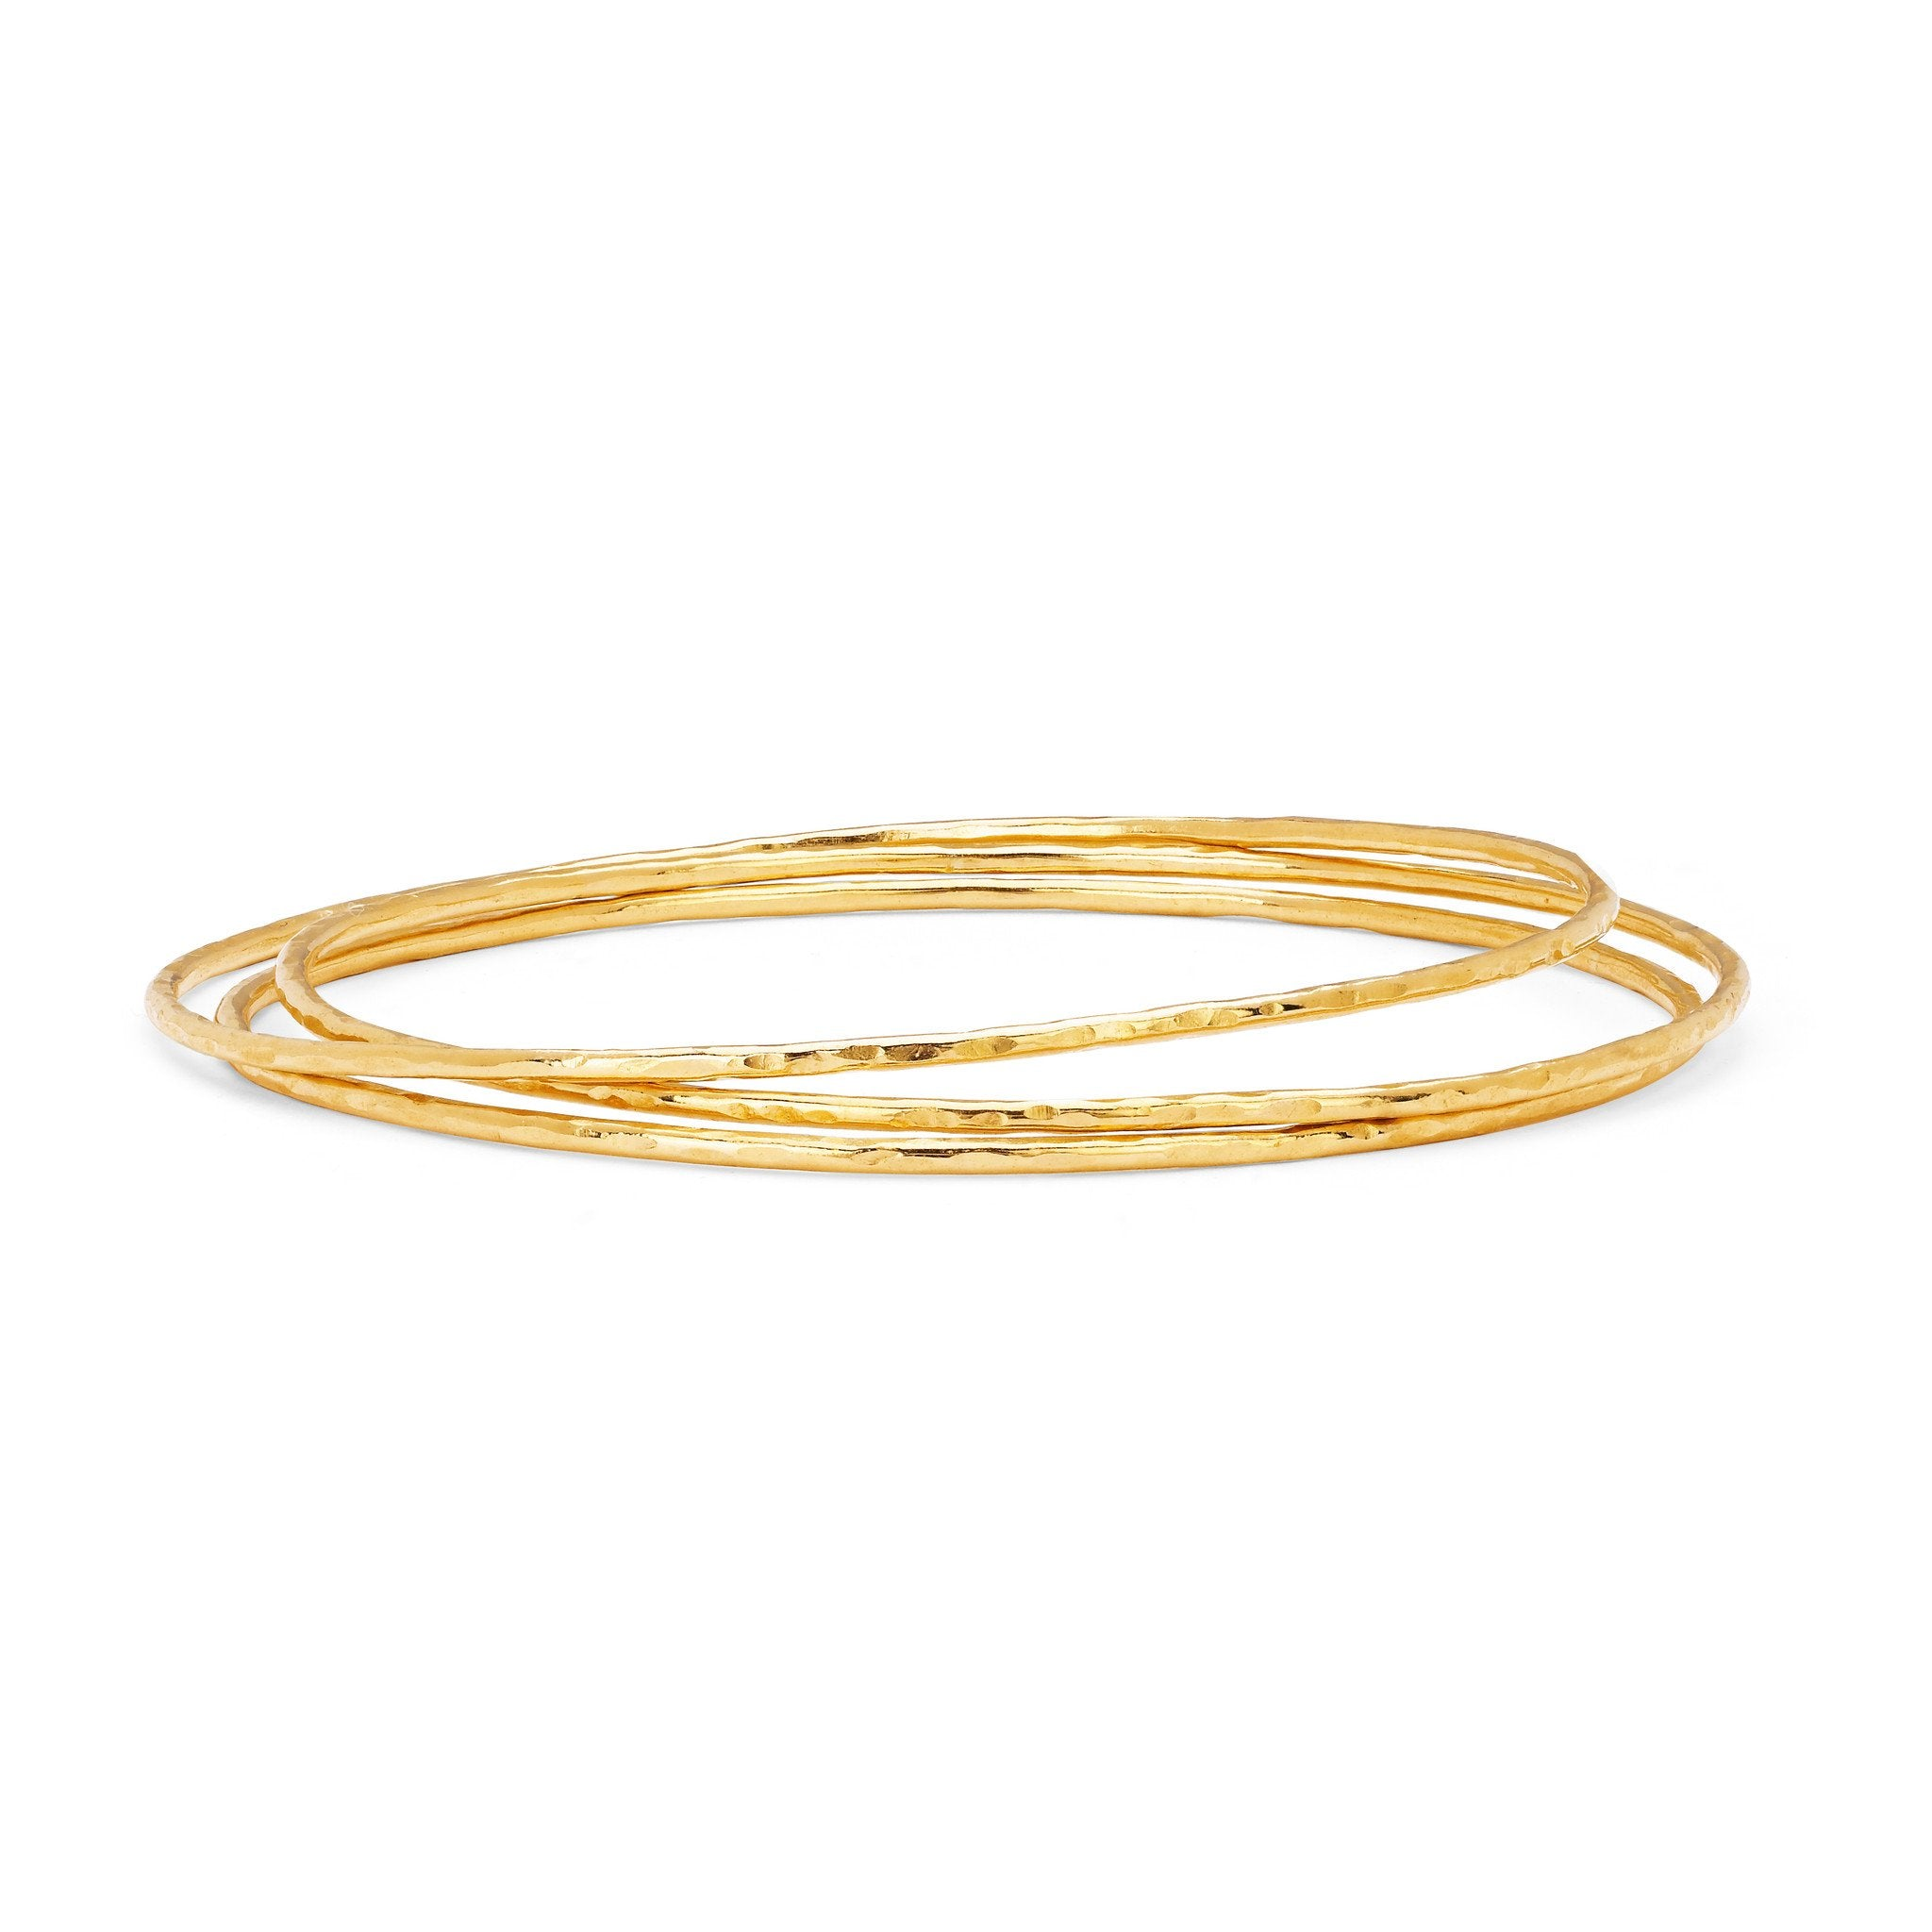 tw gold vian bangles bracelet vanilla diamond honey bangle popular chocolate and le in